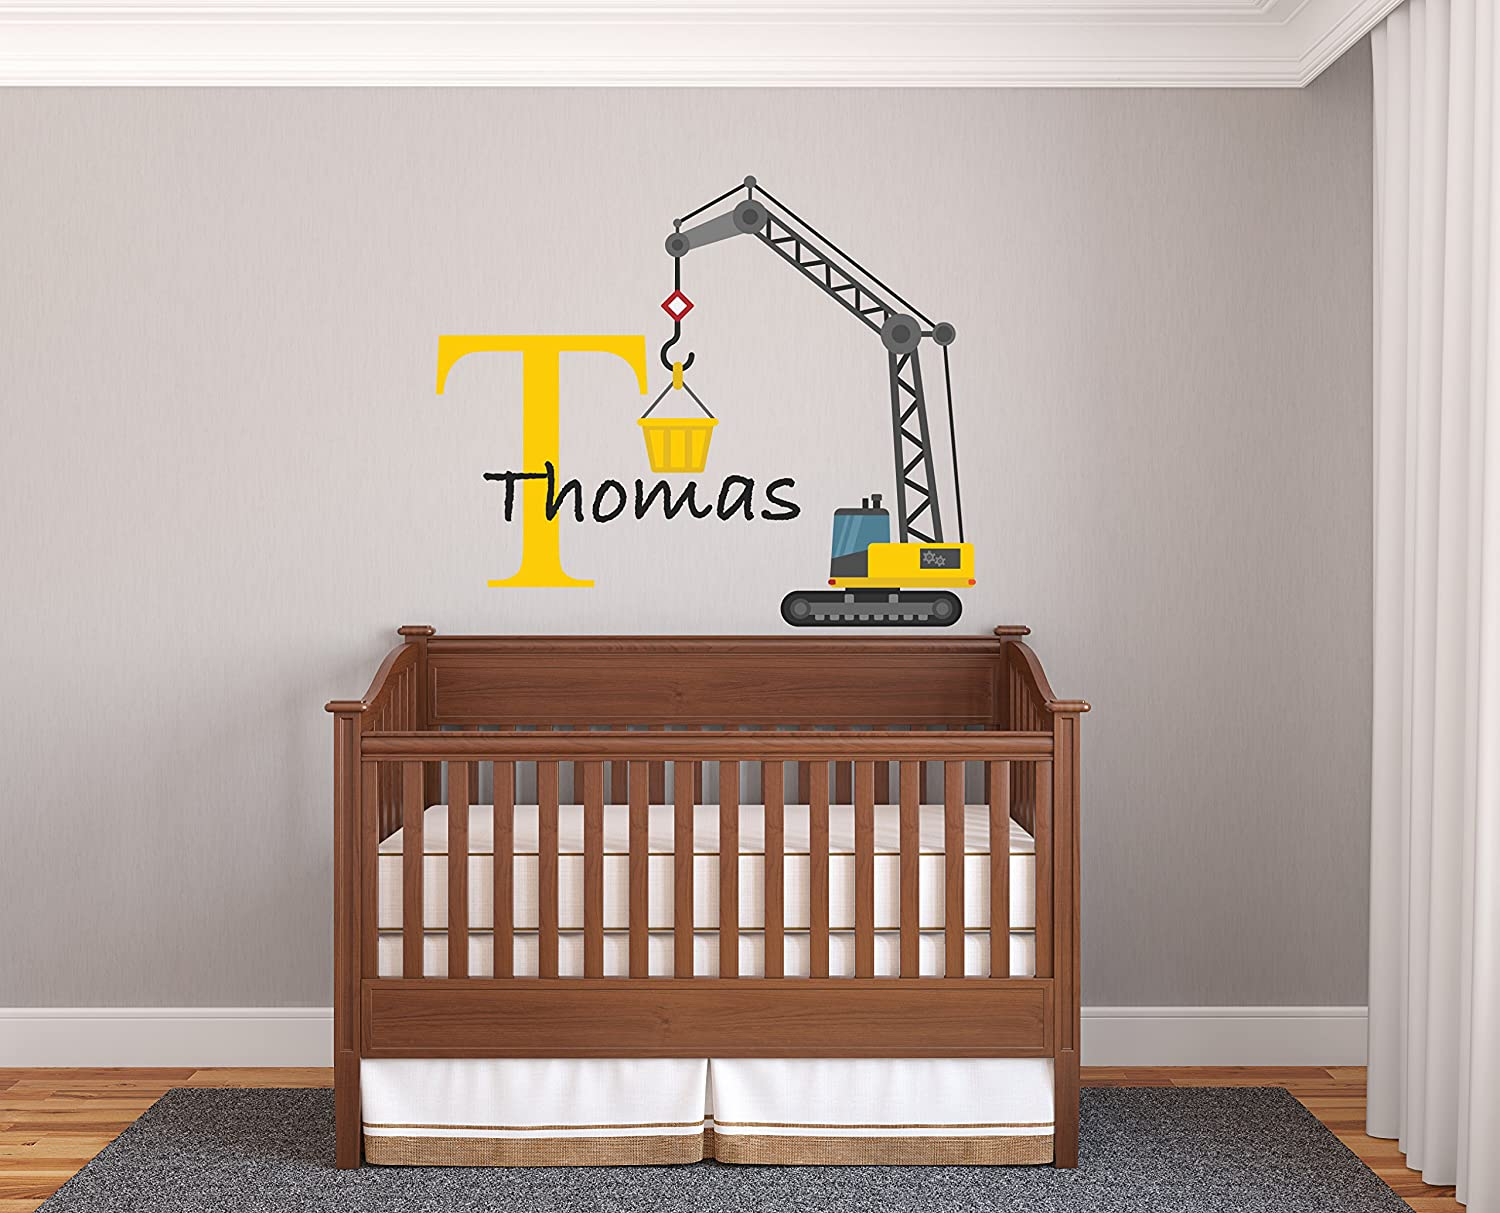 "Custom Name & Initial Construction Crane - Prime Series - Baby Boy - Nursery Wall Decal for Baby Room Decorations - Mural Wall Decal Sticker for Home Children's Bedroom (Wide 22""x18"" Height)"